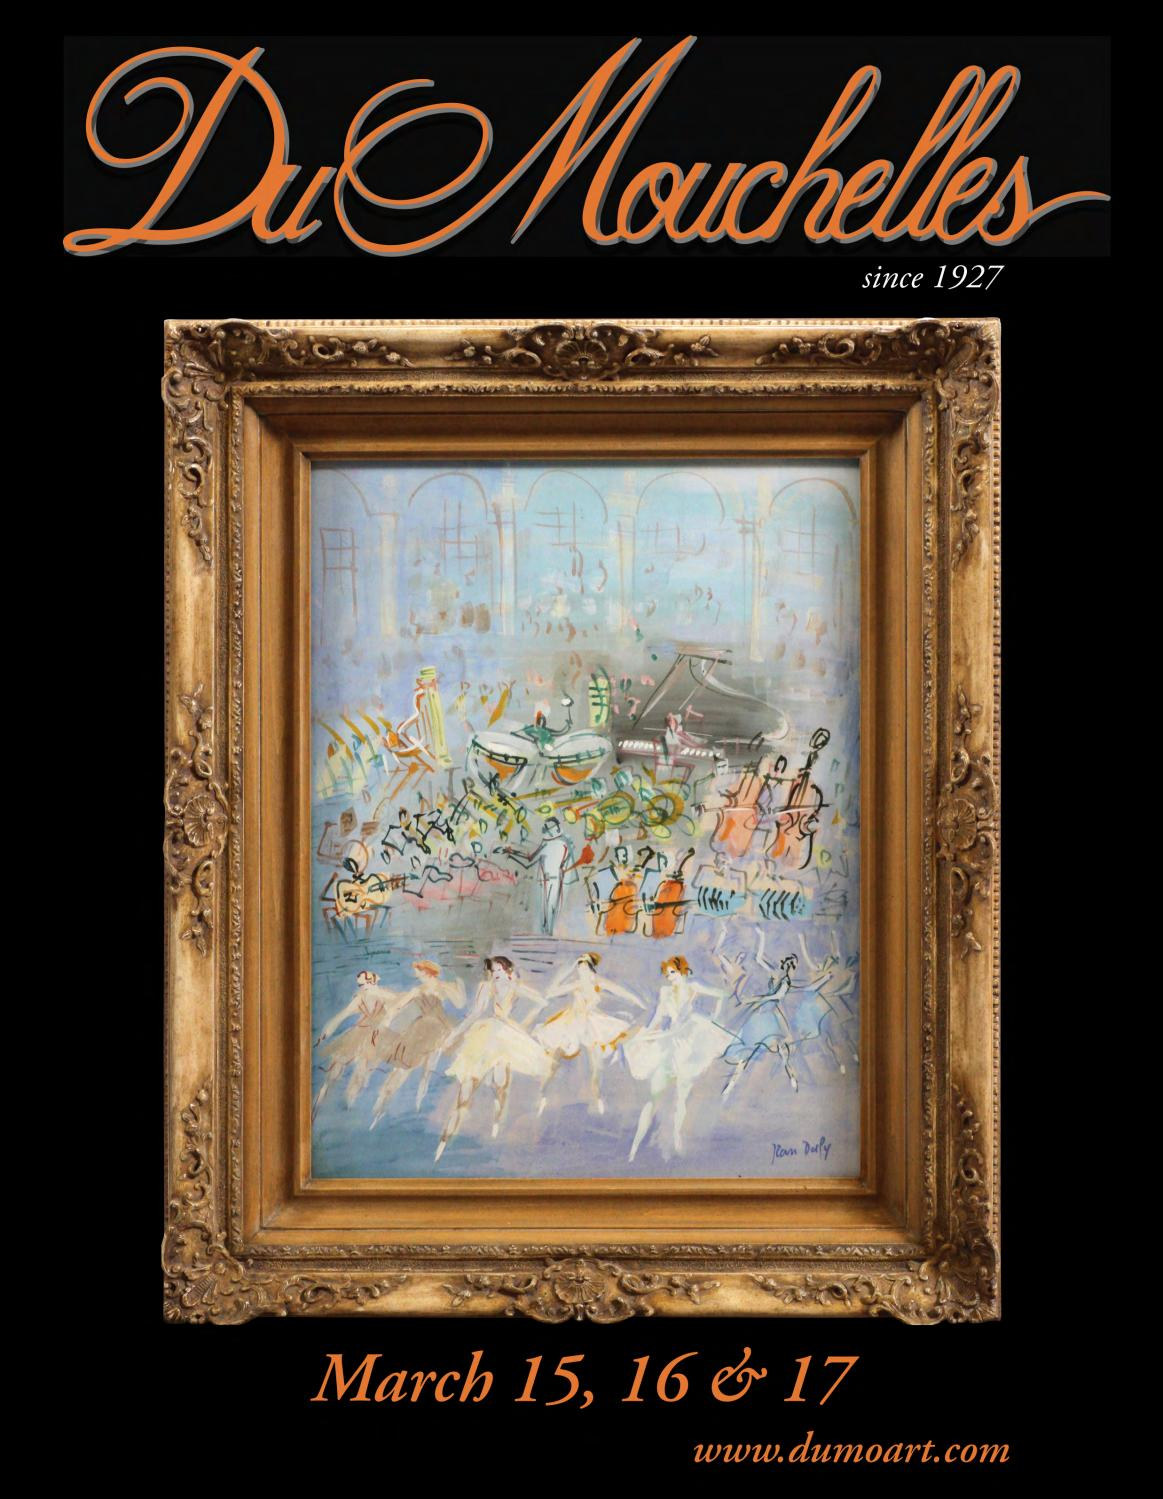 6c6a66b2bf077 DuMouchelle Art Gallery 2019 March 15th-17th Auction by DuMouchelle ...